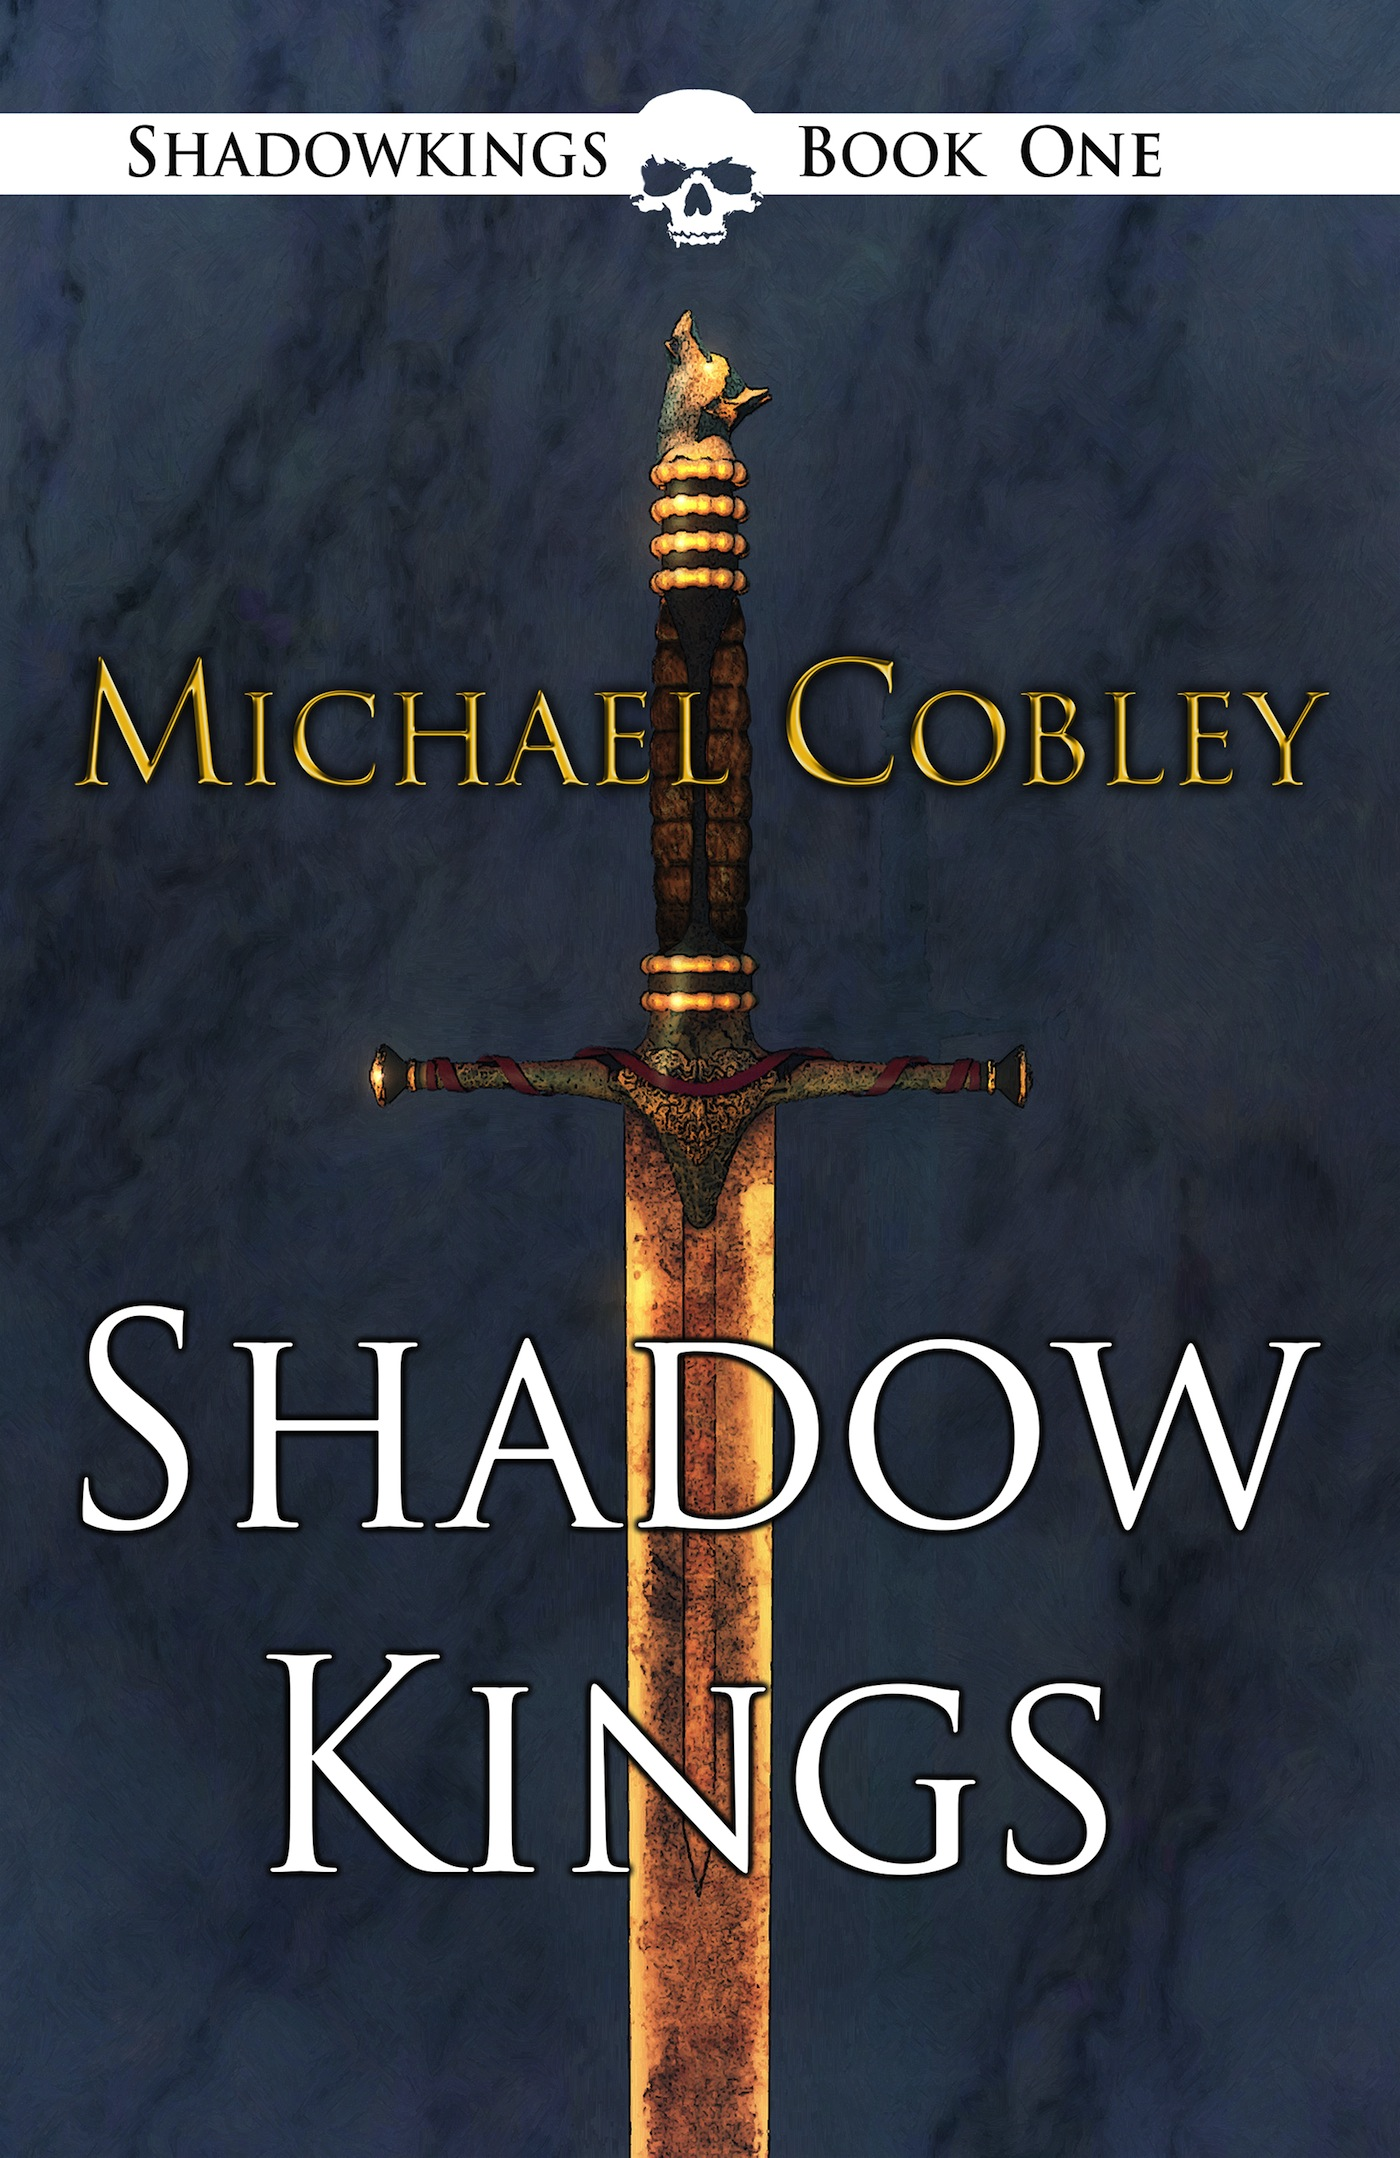 Shadowkings by Michael Cobley